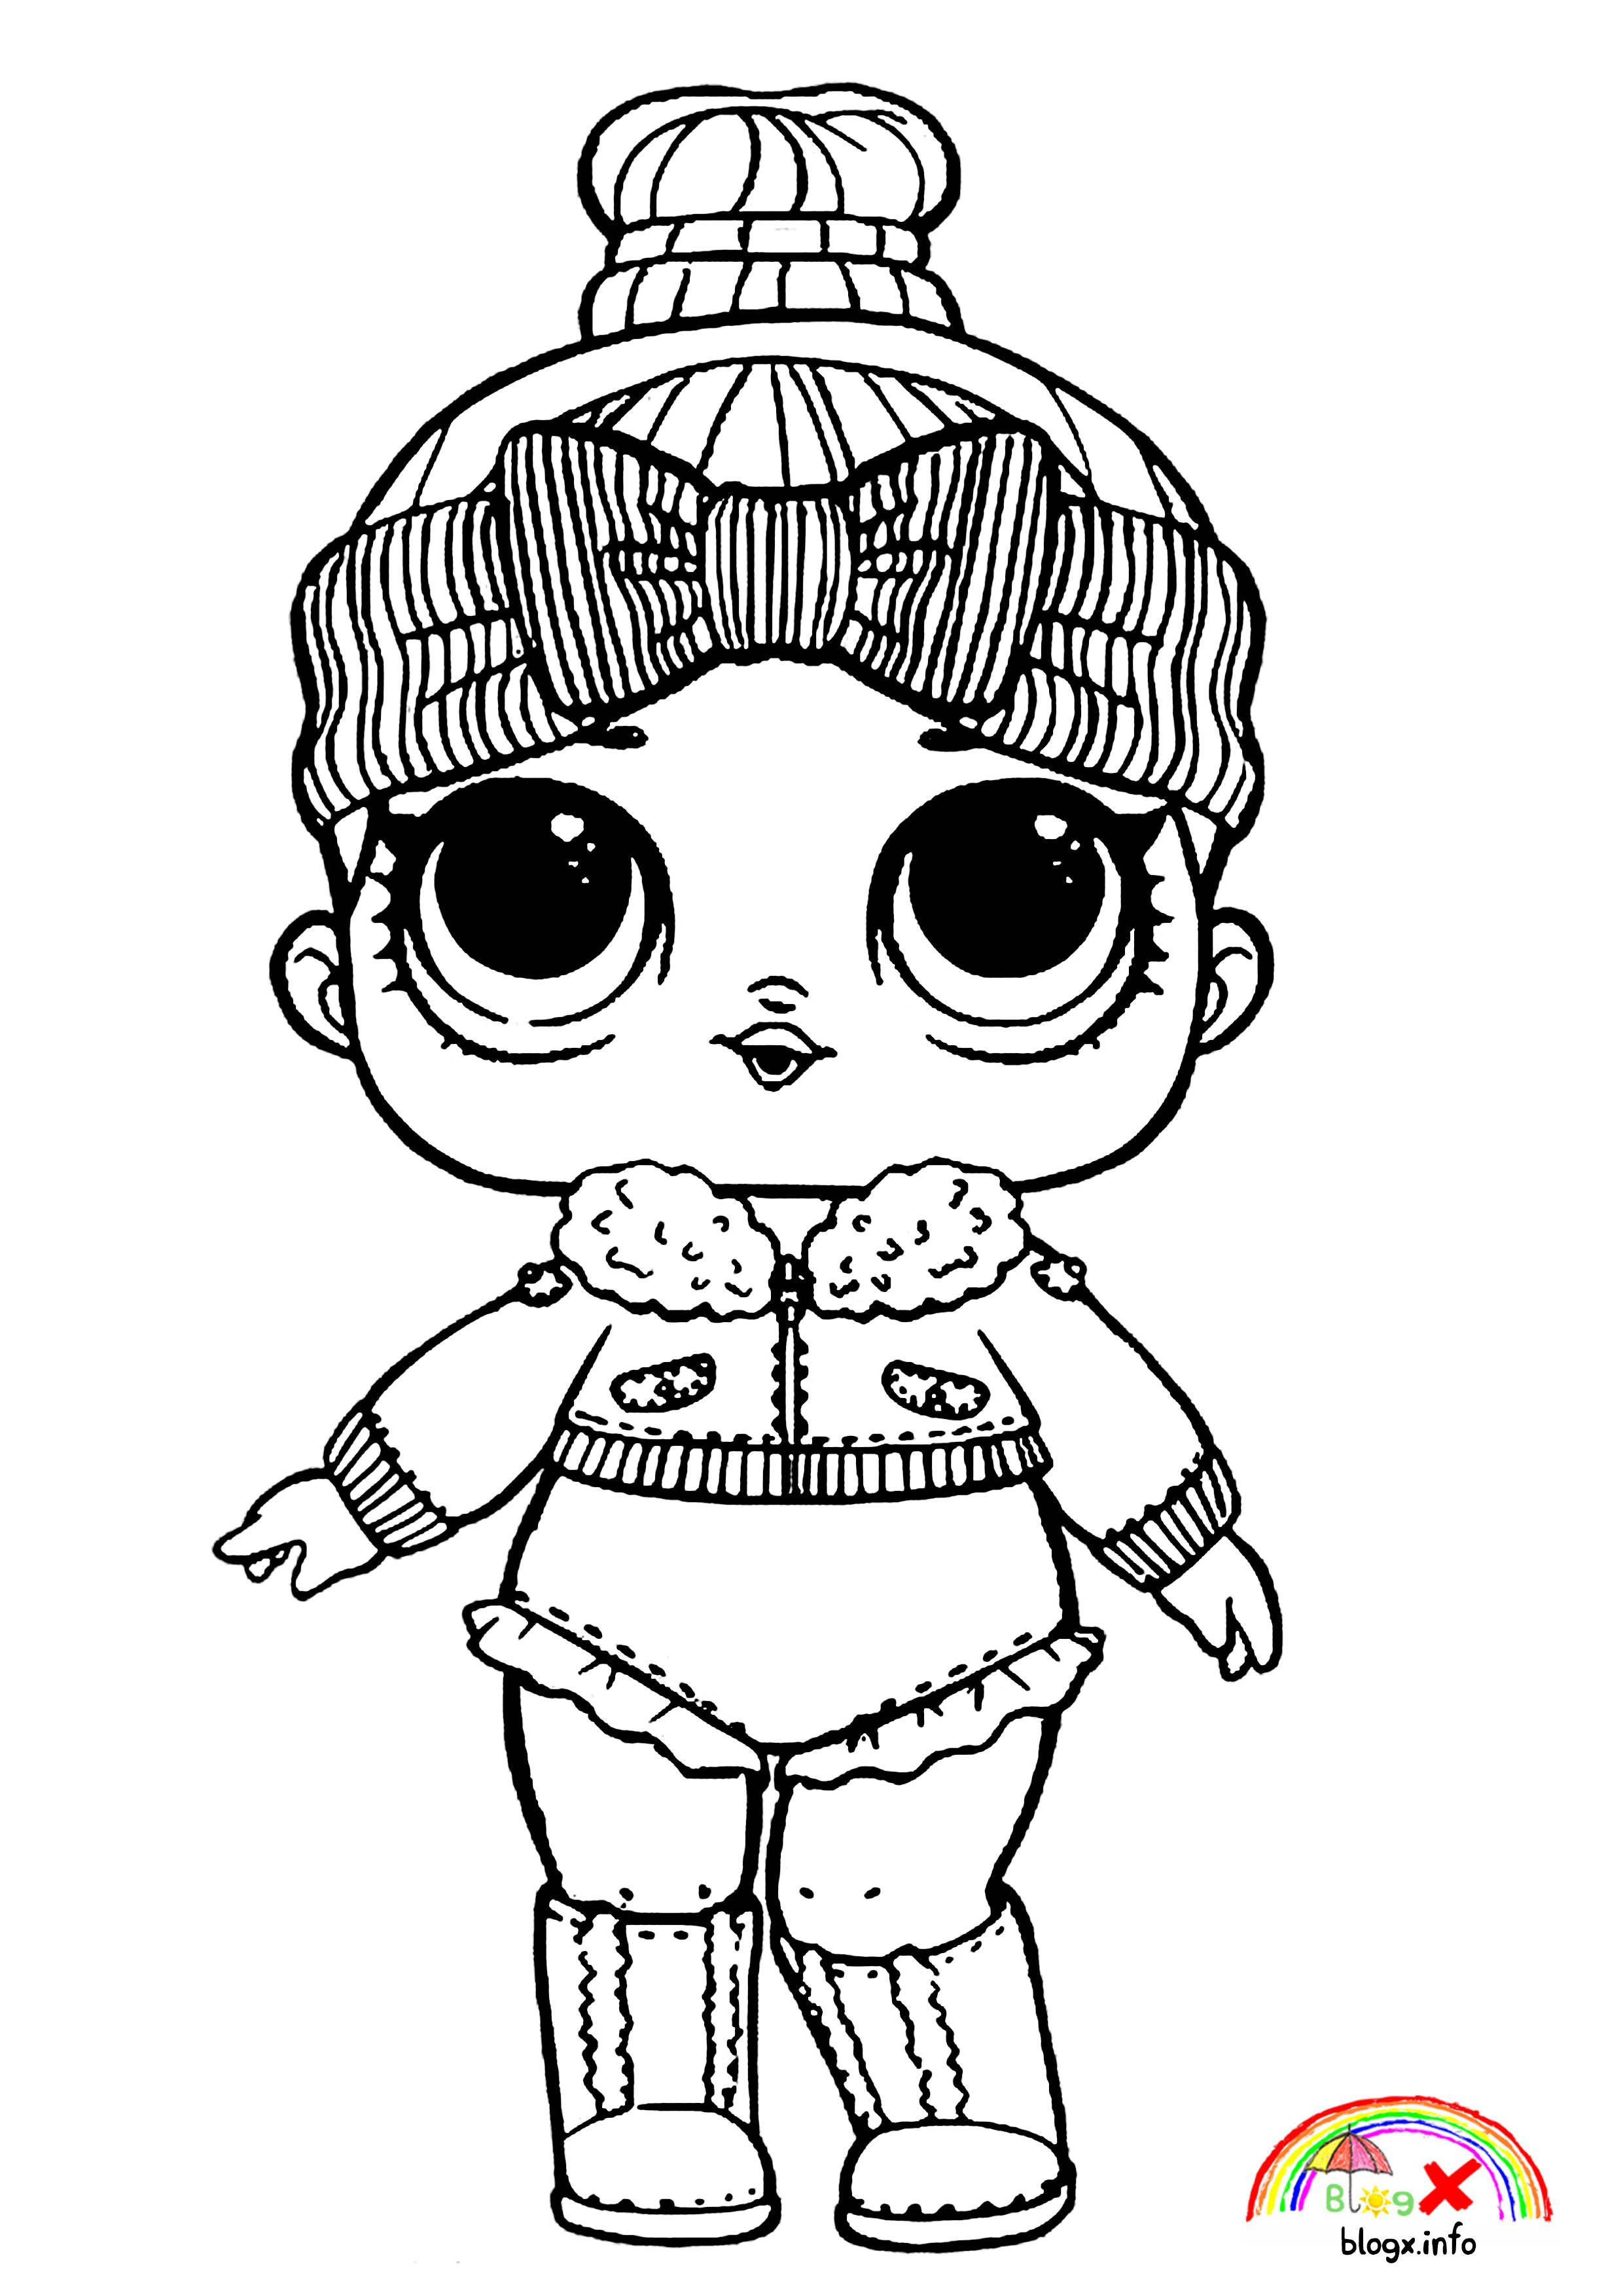 Winter Lol Dolls Coloring Pages Lol Dolls Cute Coloring Pages Coloring Pages